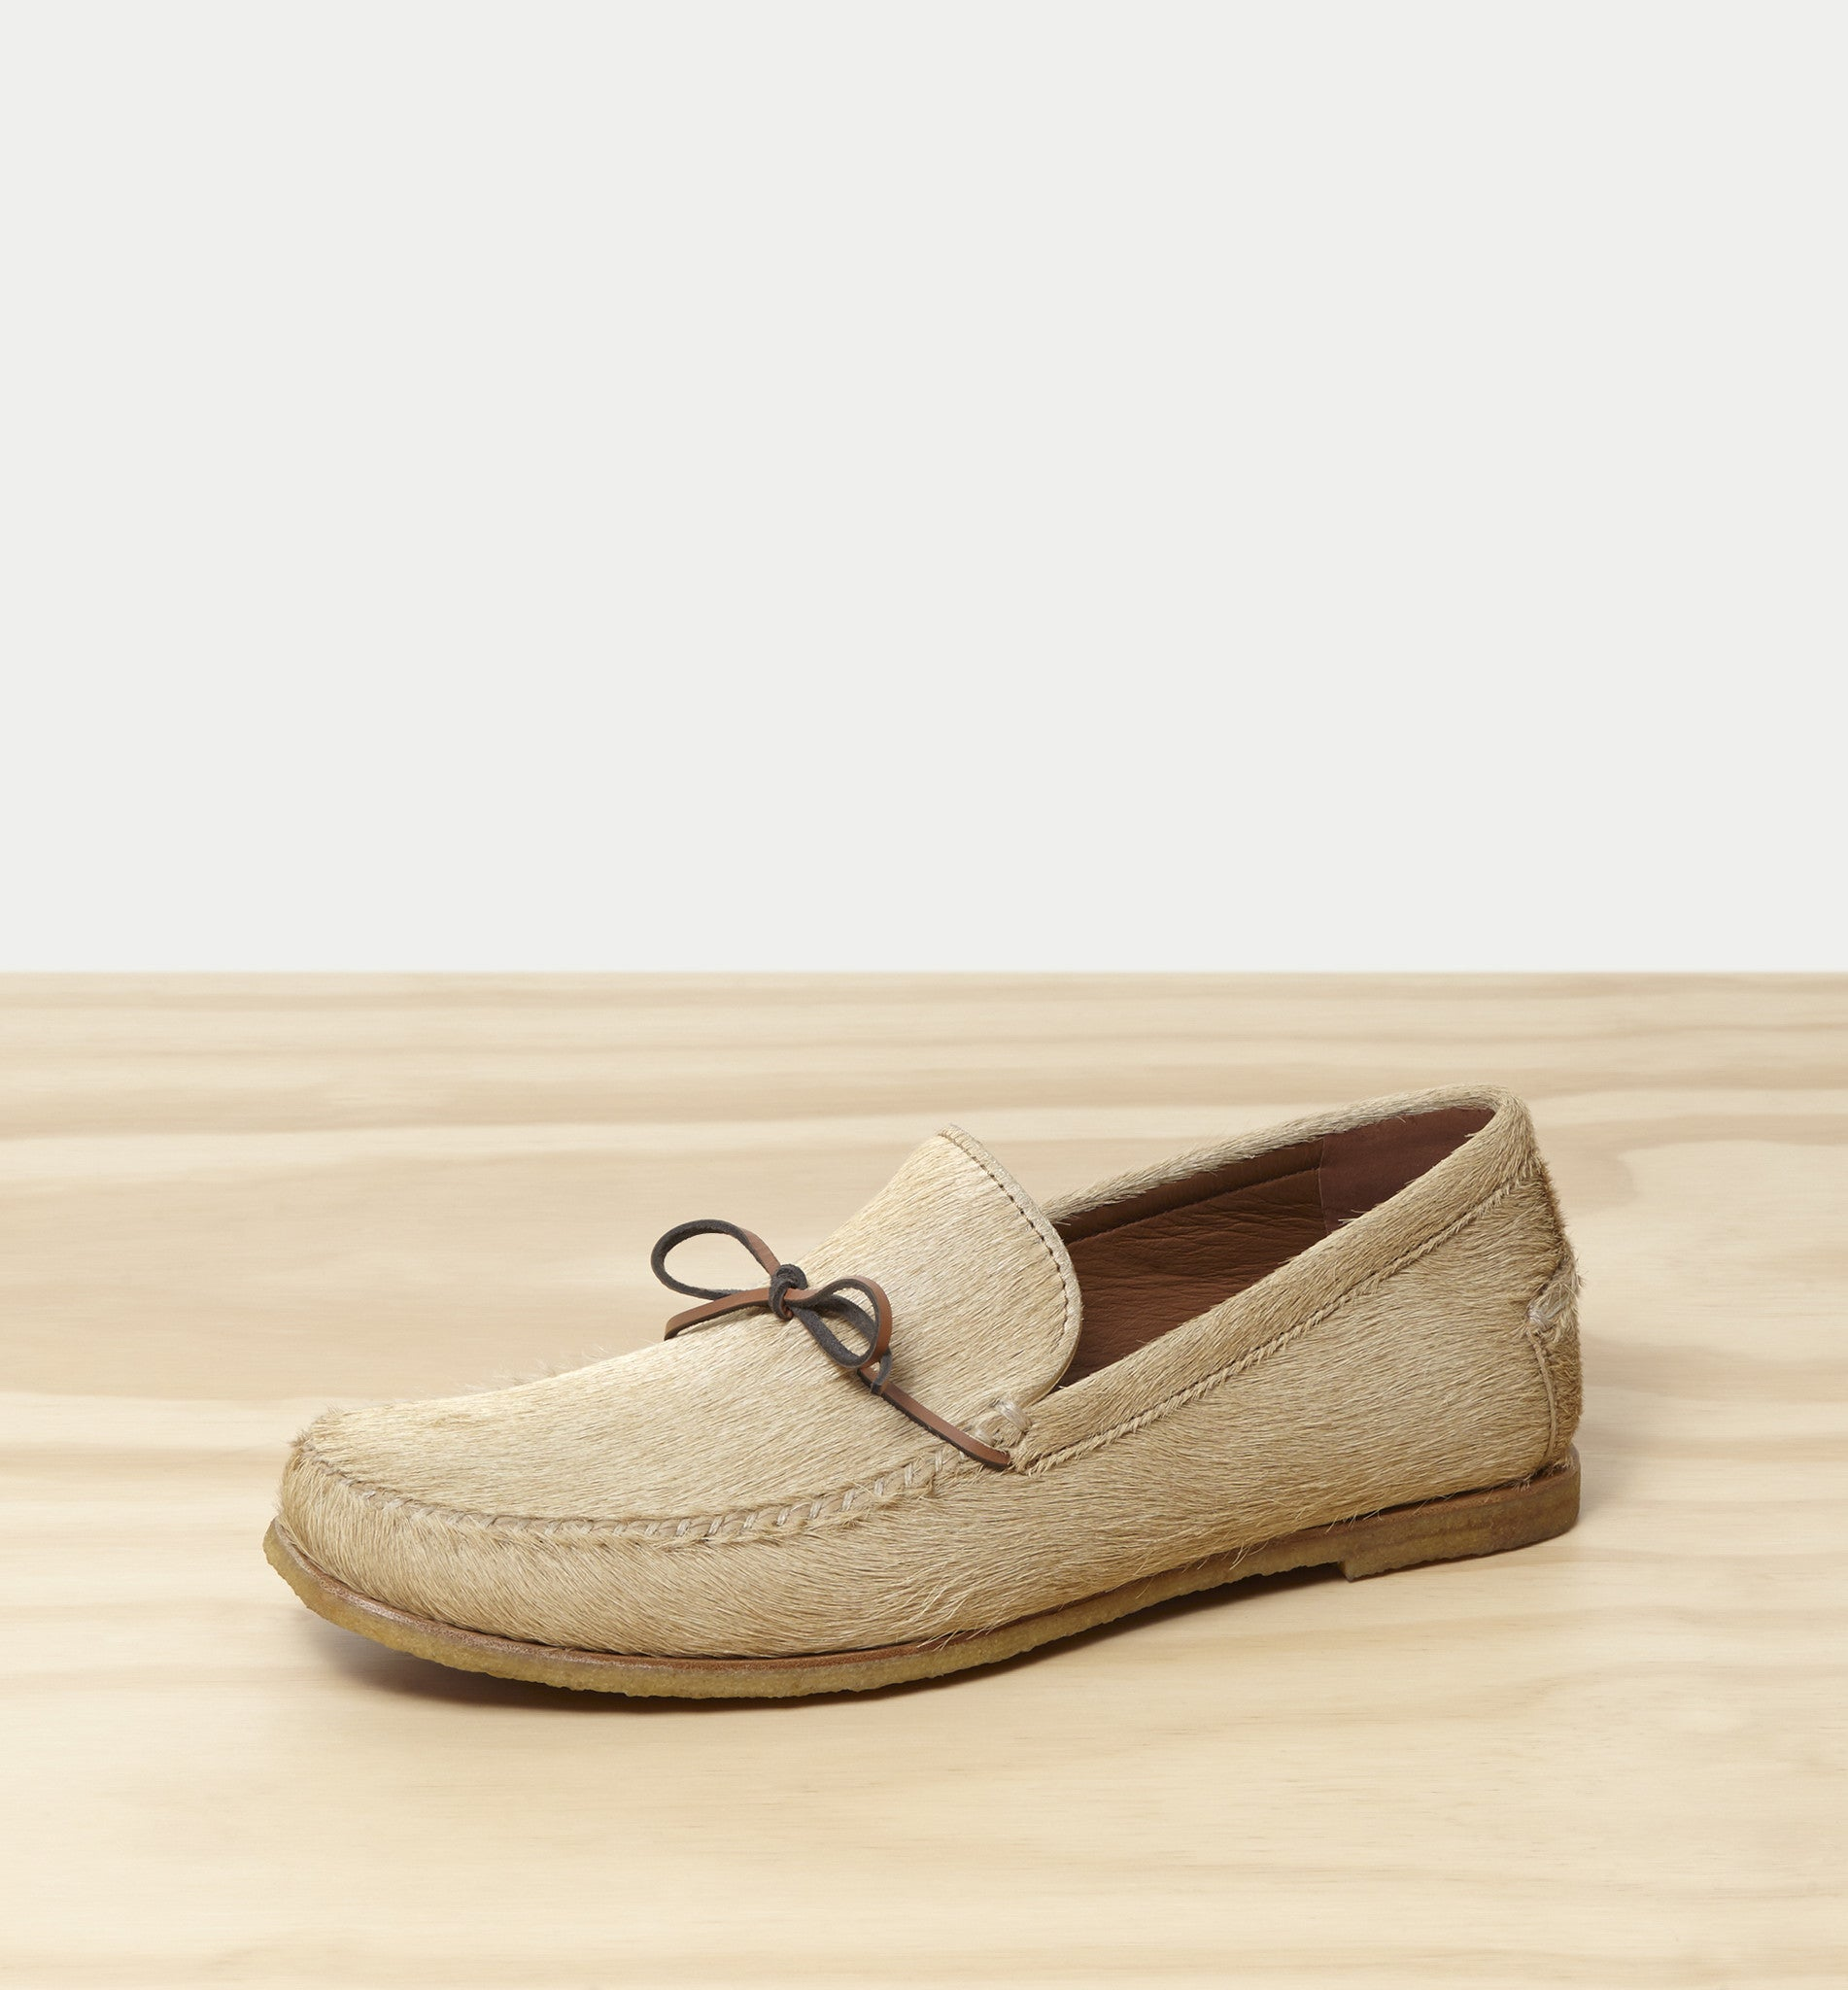 nomad moccasin